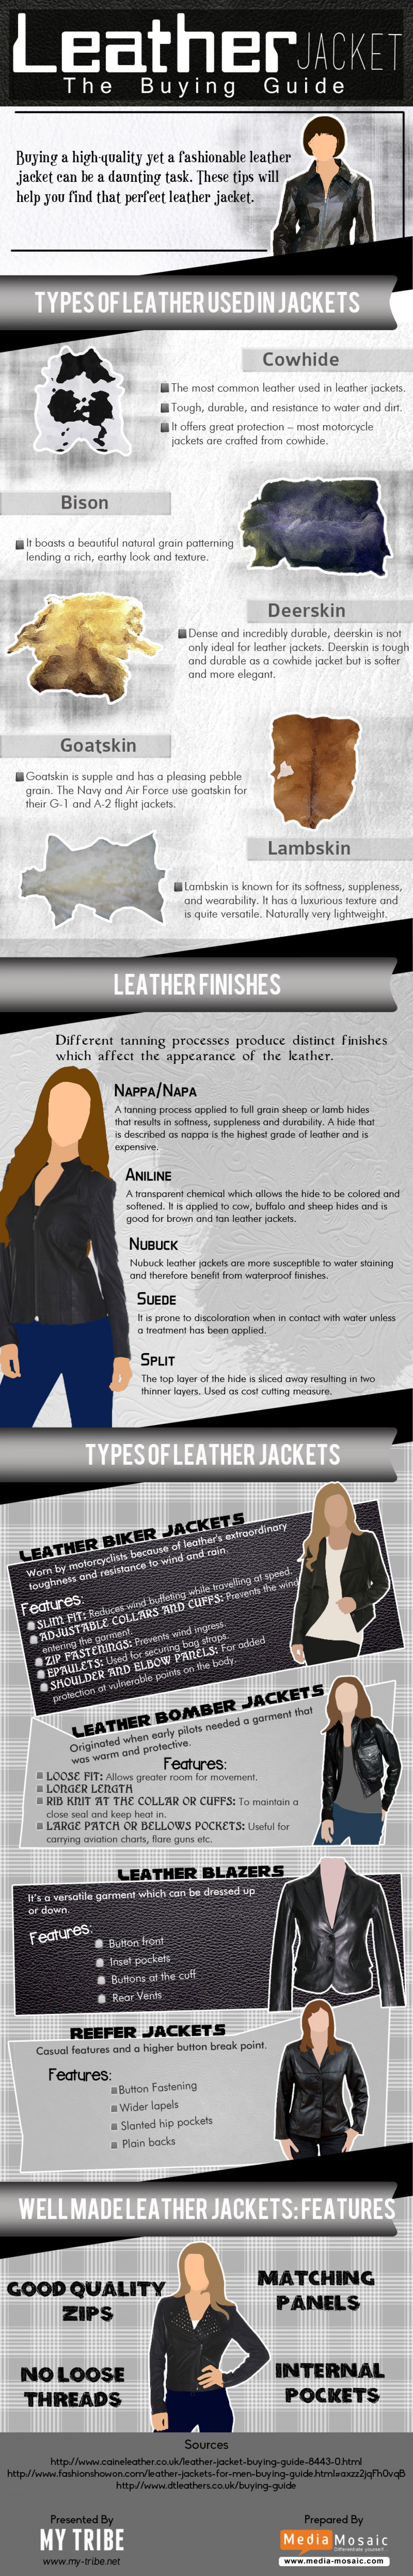 Leather jacket guide